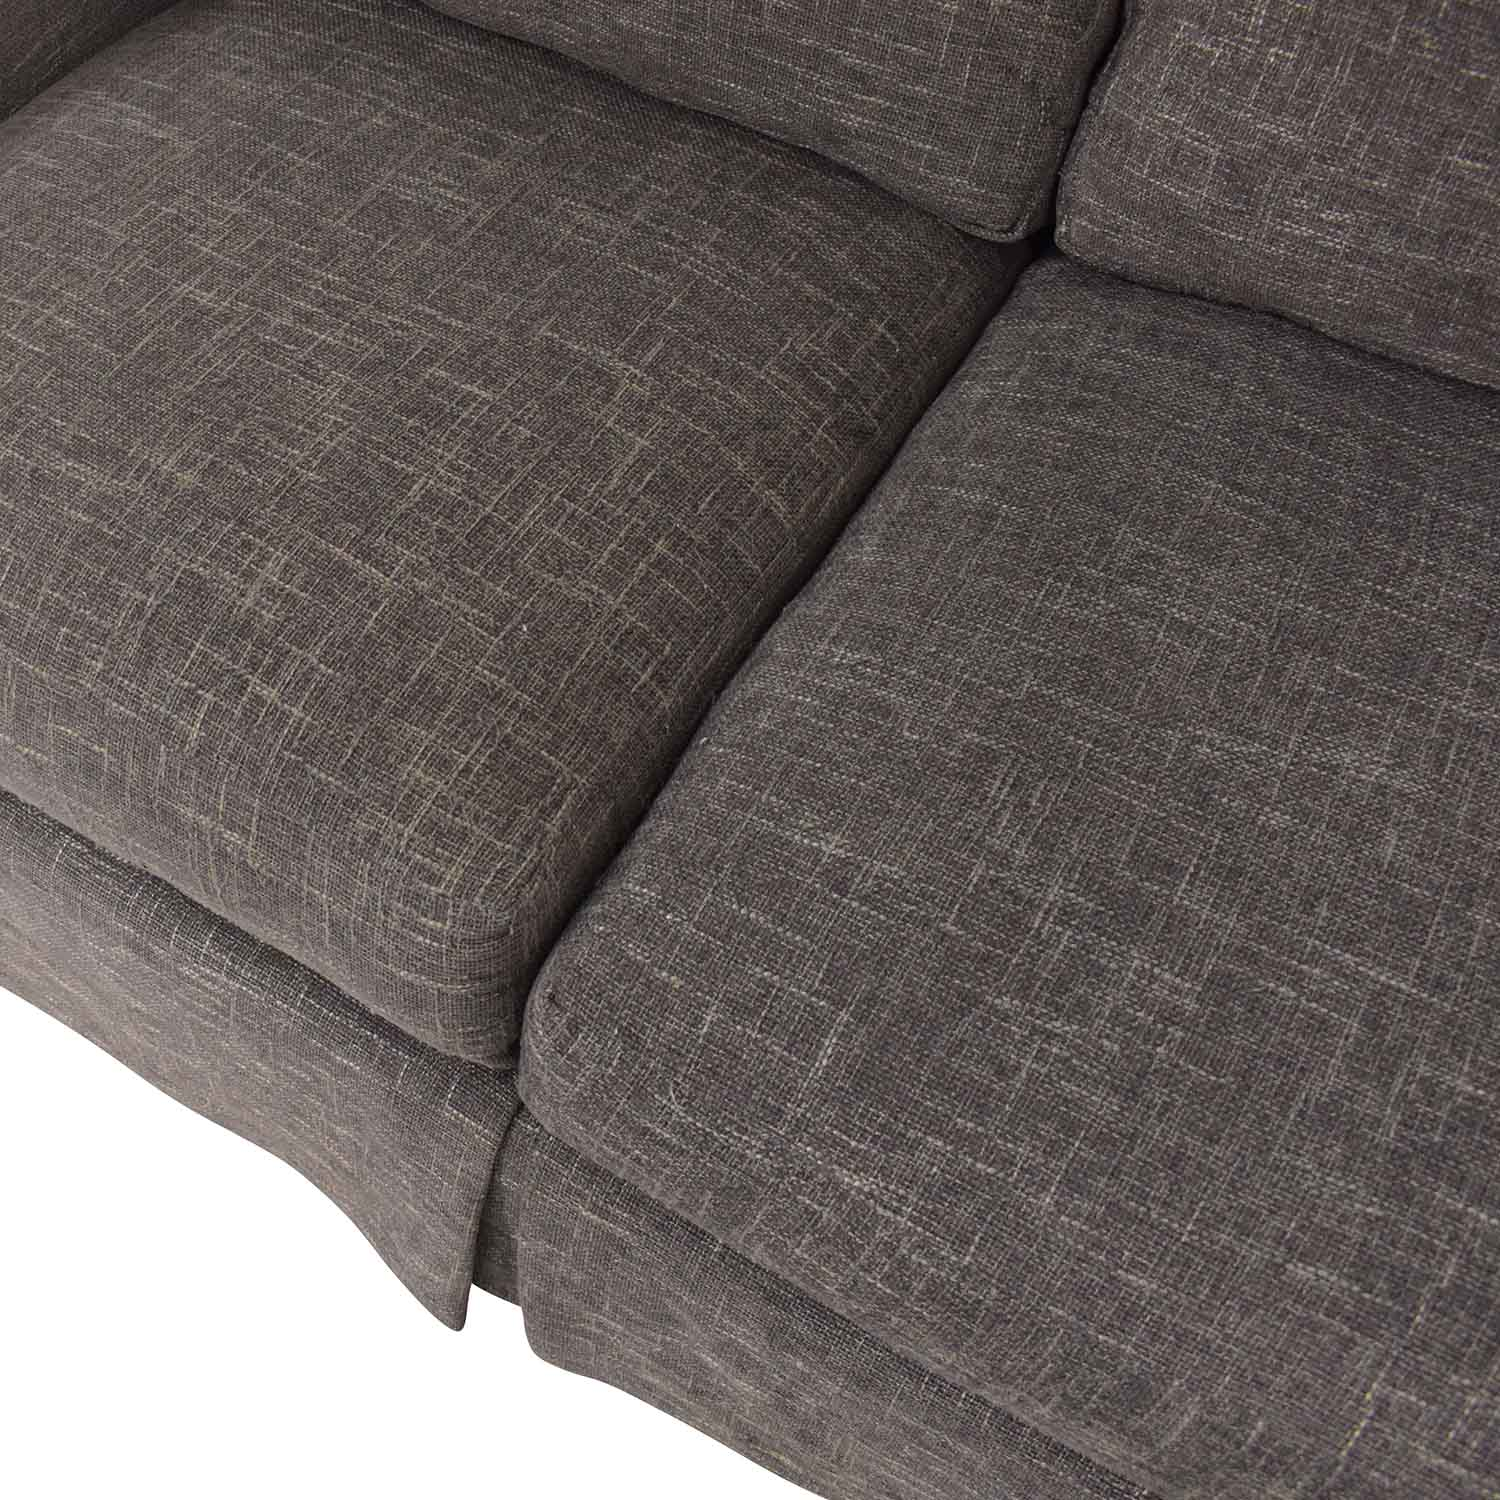 Thomasville Thomasville Two Seater Sofa for sale